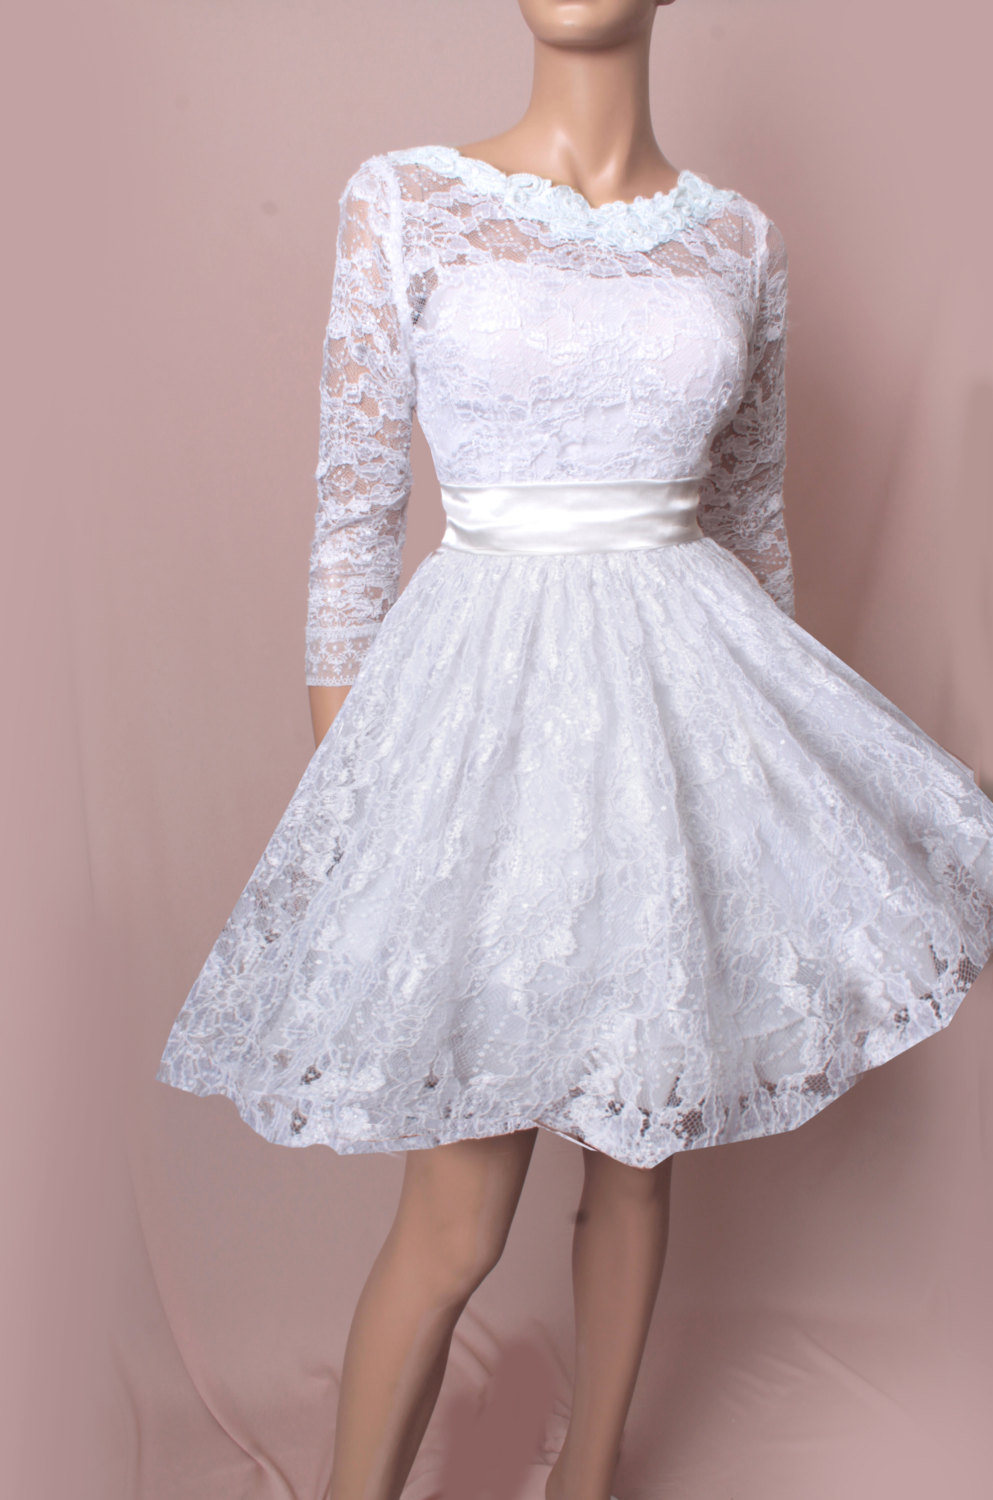 Wedding Dresses 3 4 Sleeves Lace : Short lace dress sleeves bridal gown wedding